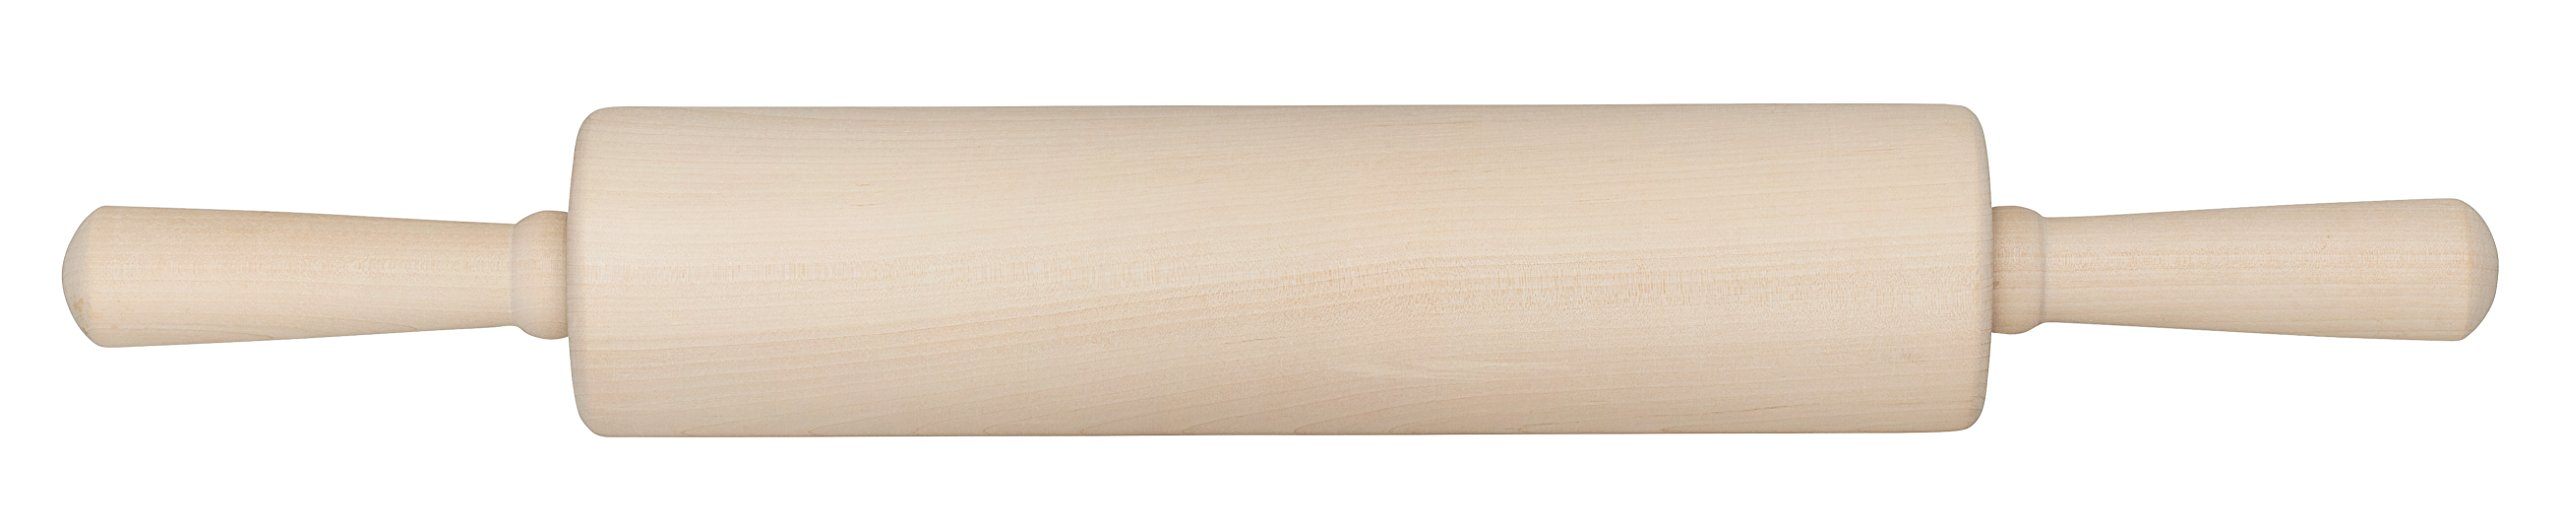 Mrs. Anderson's Stainless Steel Ball Bearing,Classic Wooden Rolling Pin, Made in America,12-Inch by 2.75-Inch